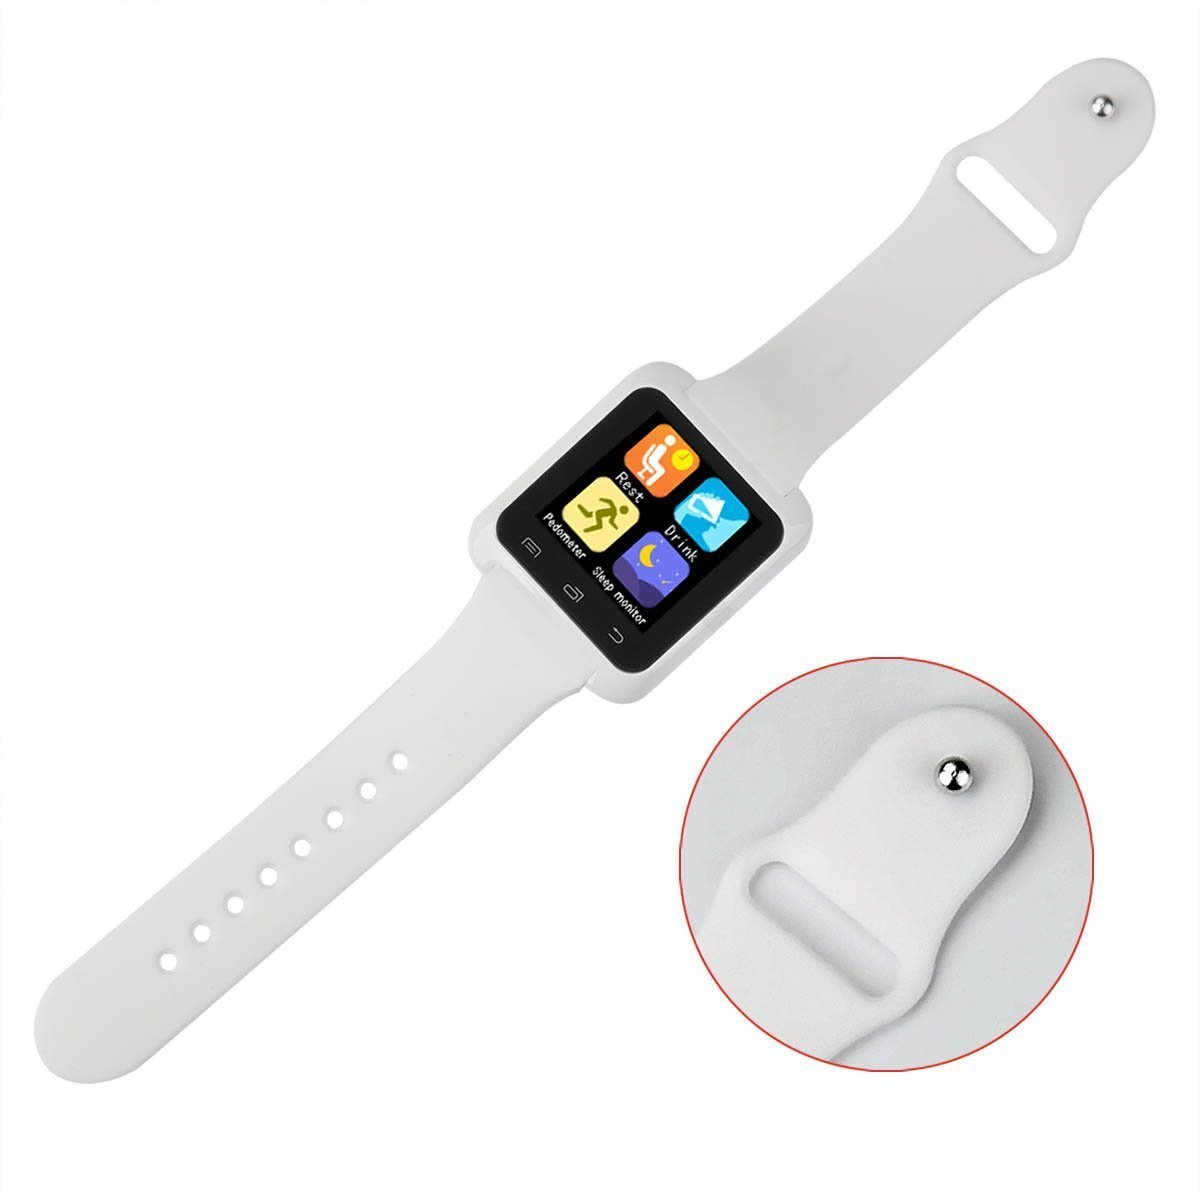 U80 Smart Watch Bluetooth 4.0 Anti-lost Wrist Wrap Watch Phone Mate for Android(Full function) and iPhone IOS(Partial function)(White (Model 2)